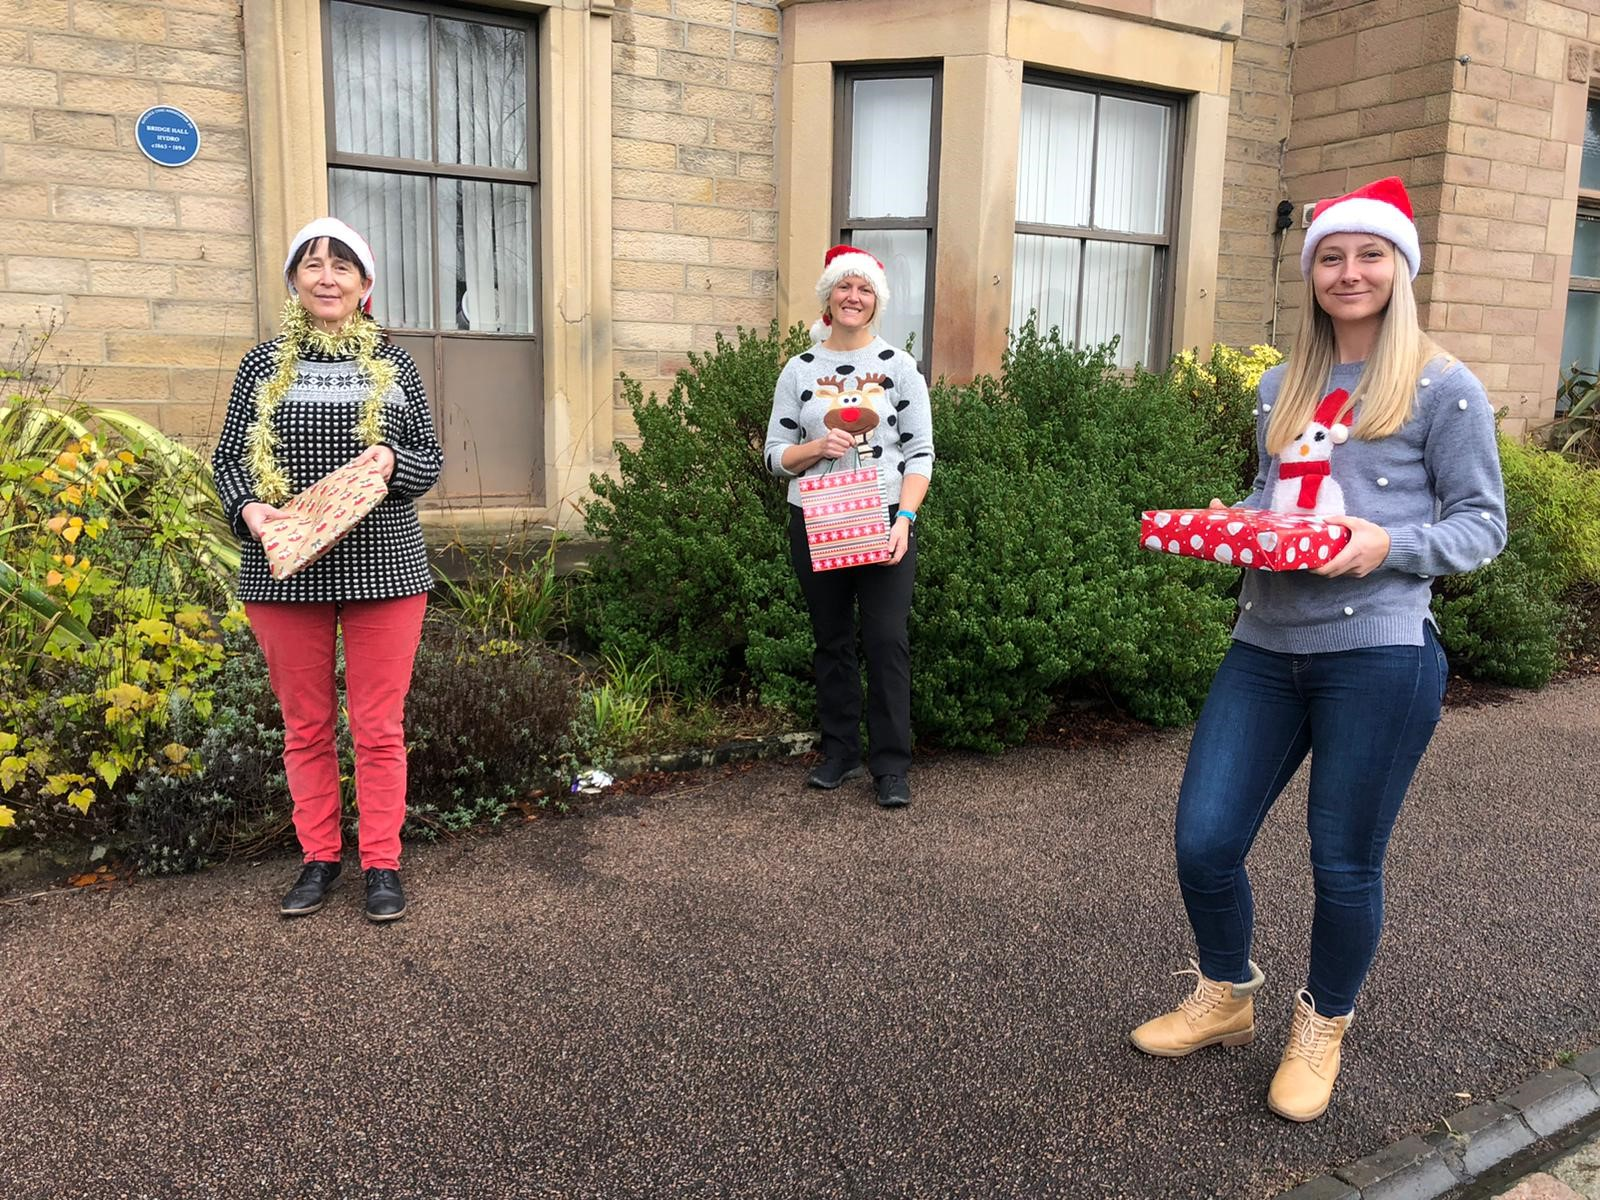 Derbyshire Dales District Council has launched a series of initiatives to help vulnerable families in the district over the Christmas period.